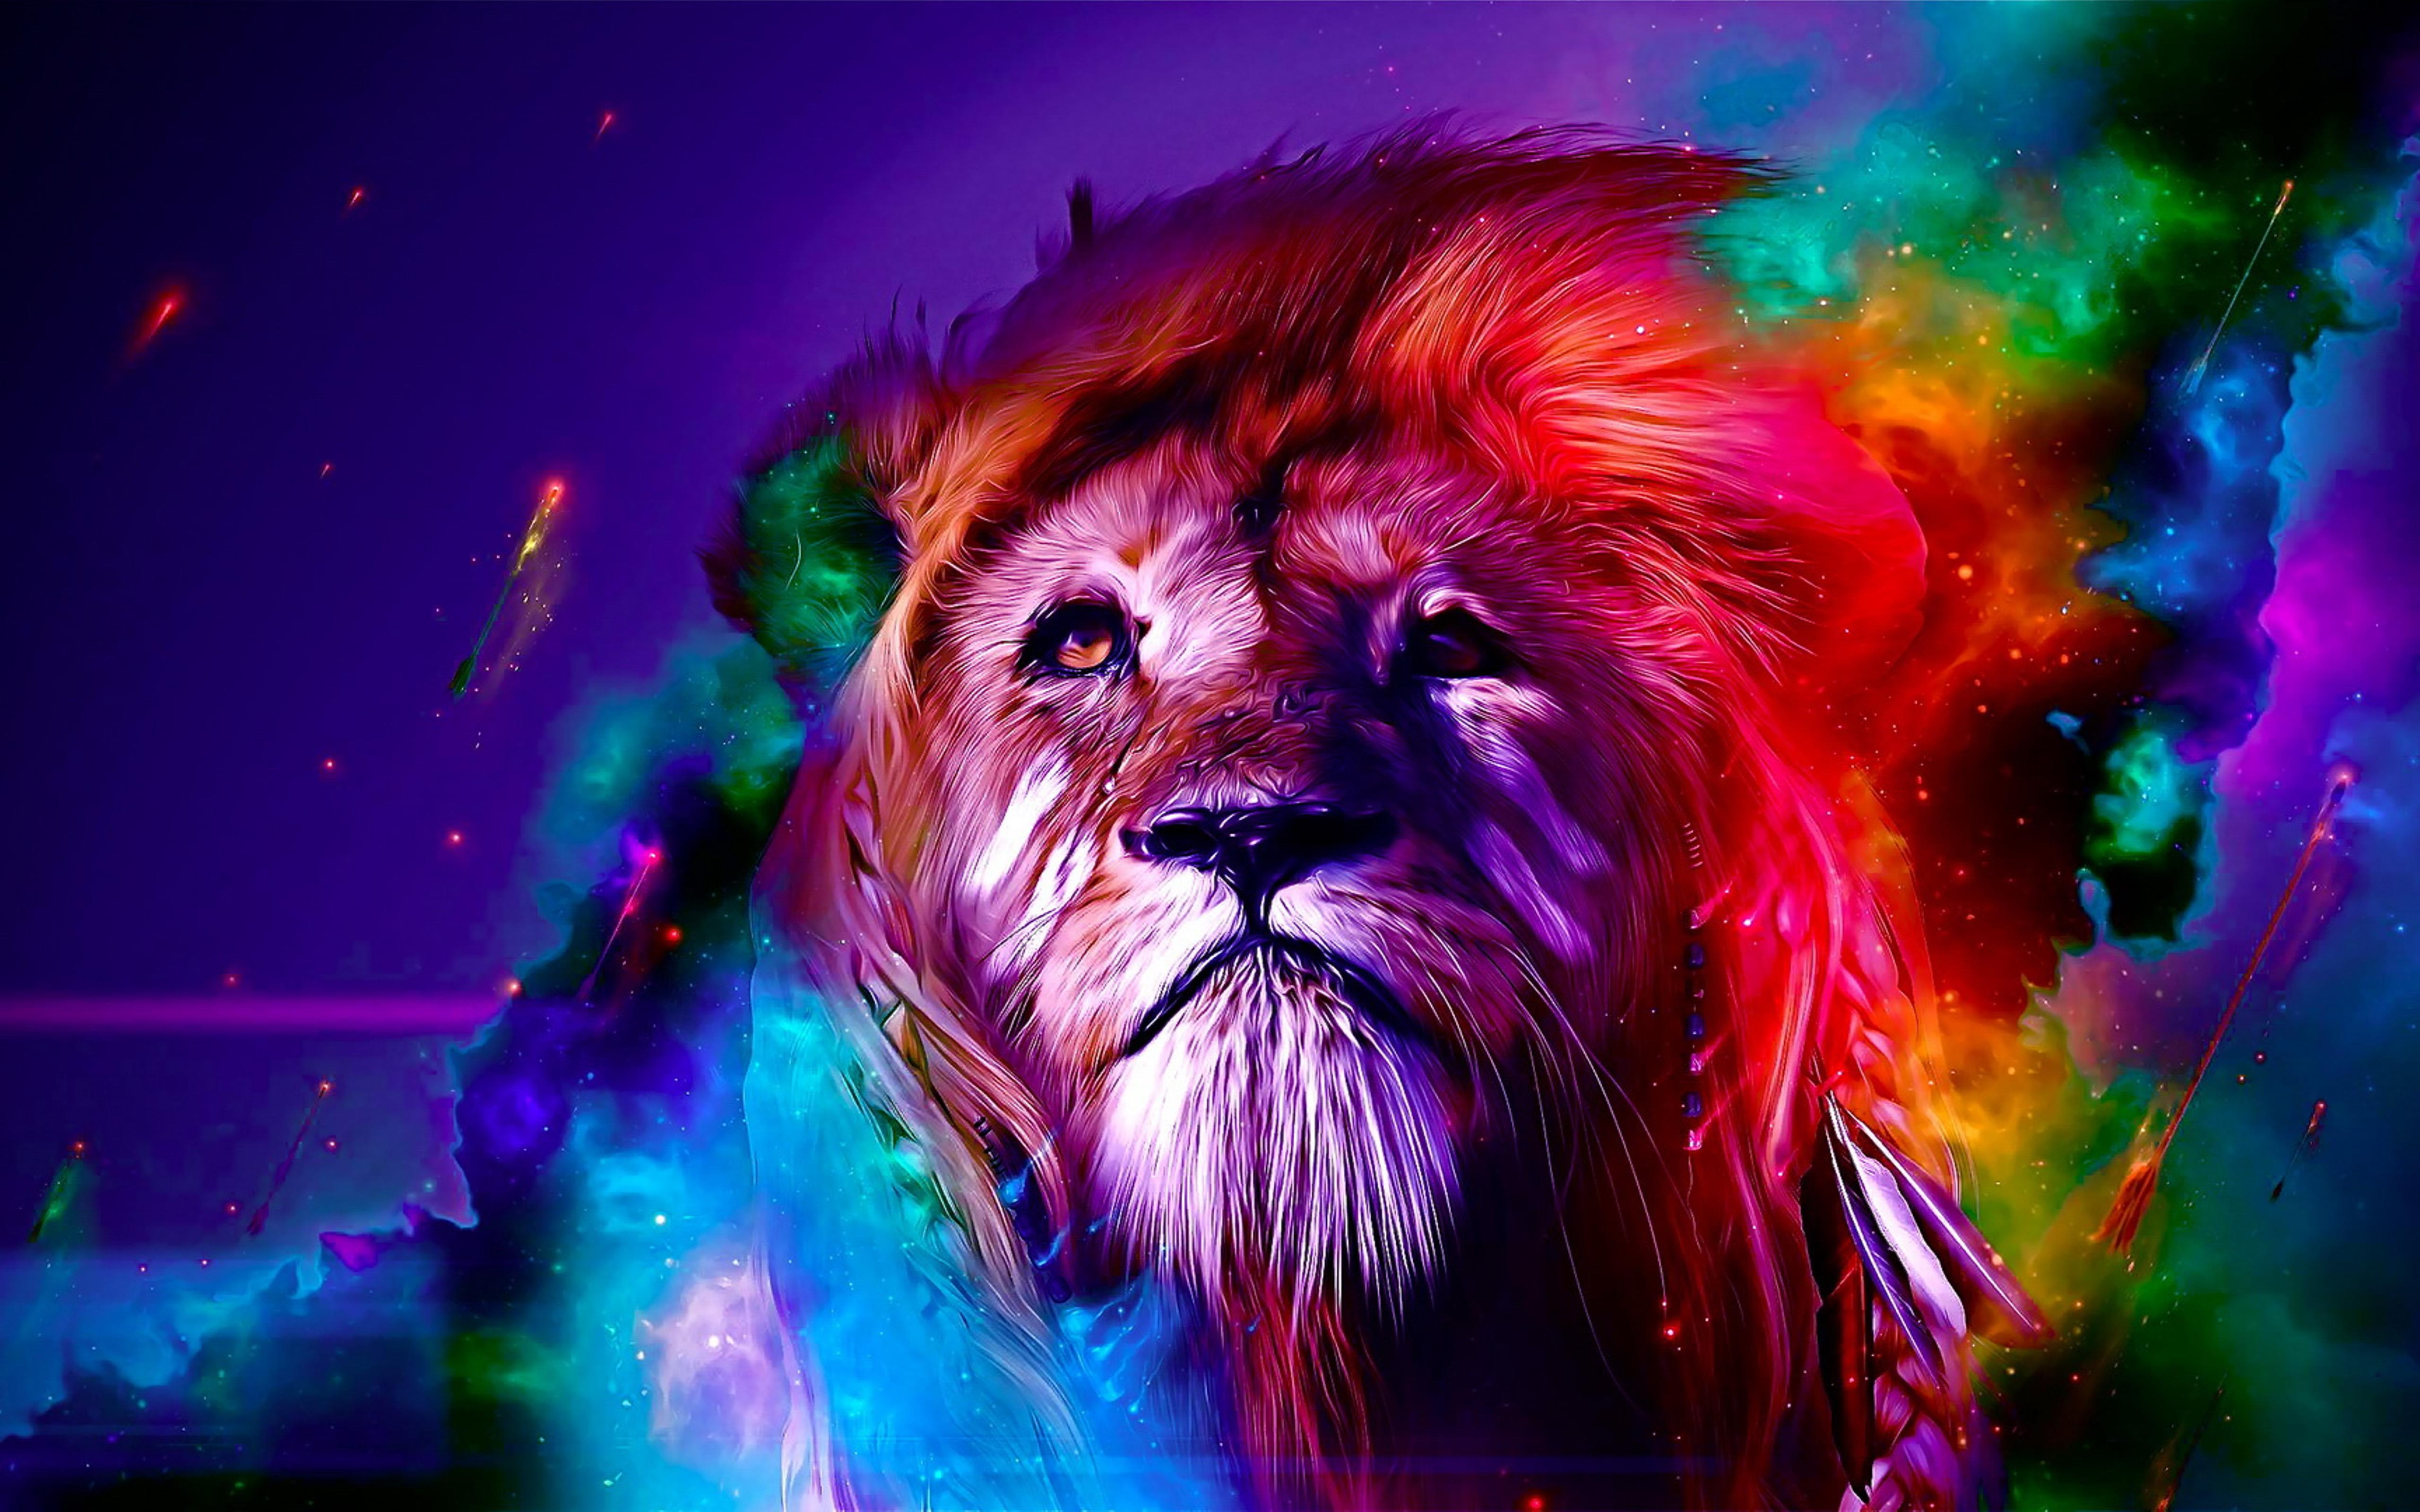 Epic Animal Wallpapers Wild Animal Colourful Leon Wallpaper Download 5120x3200